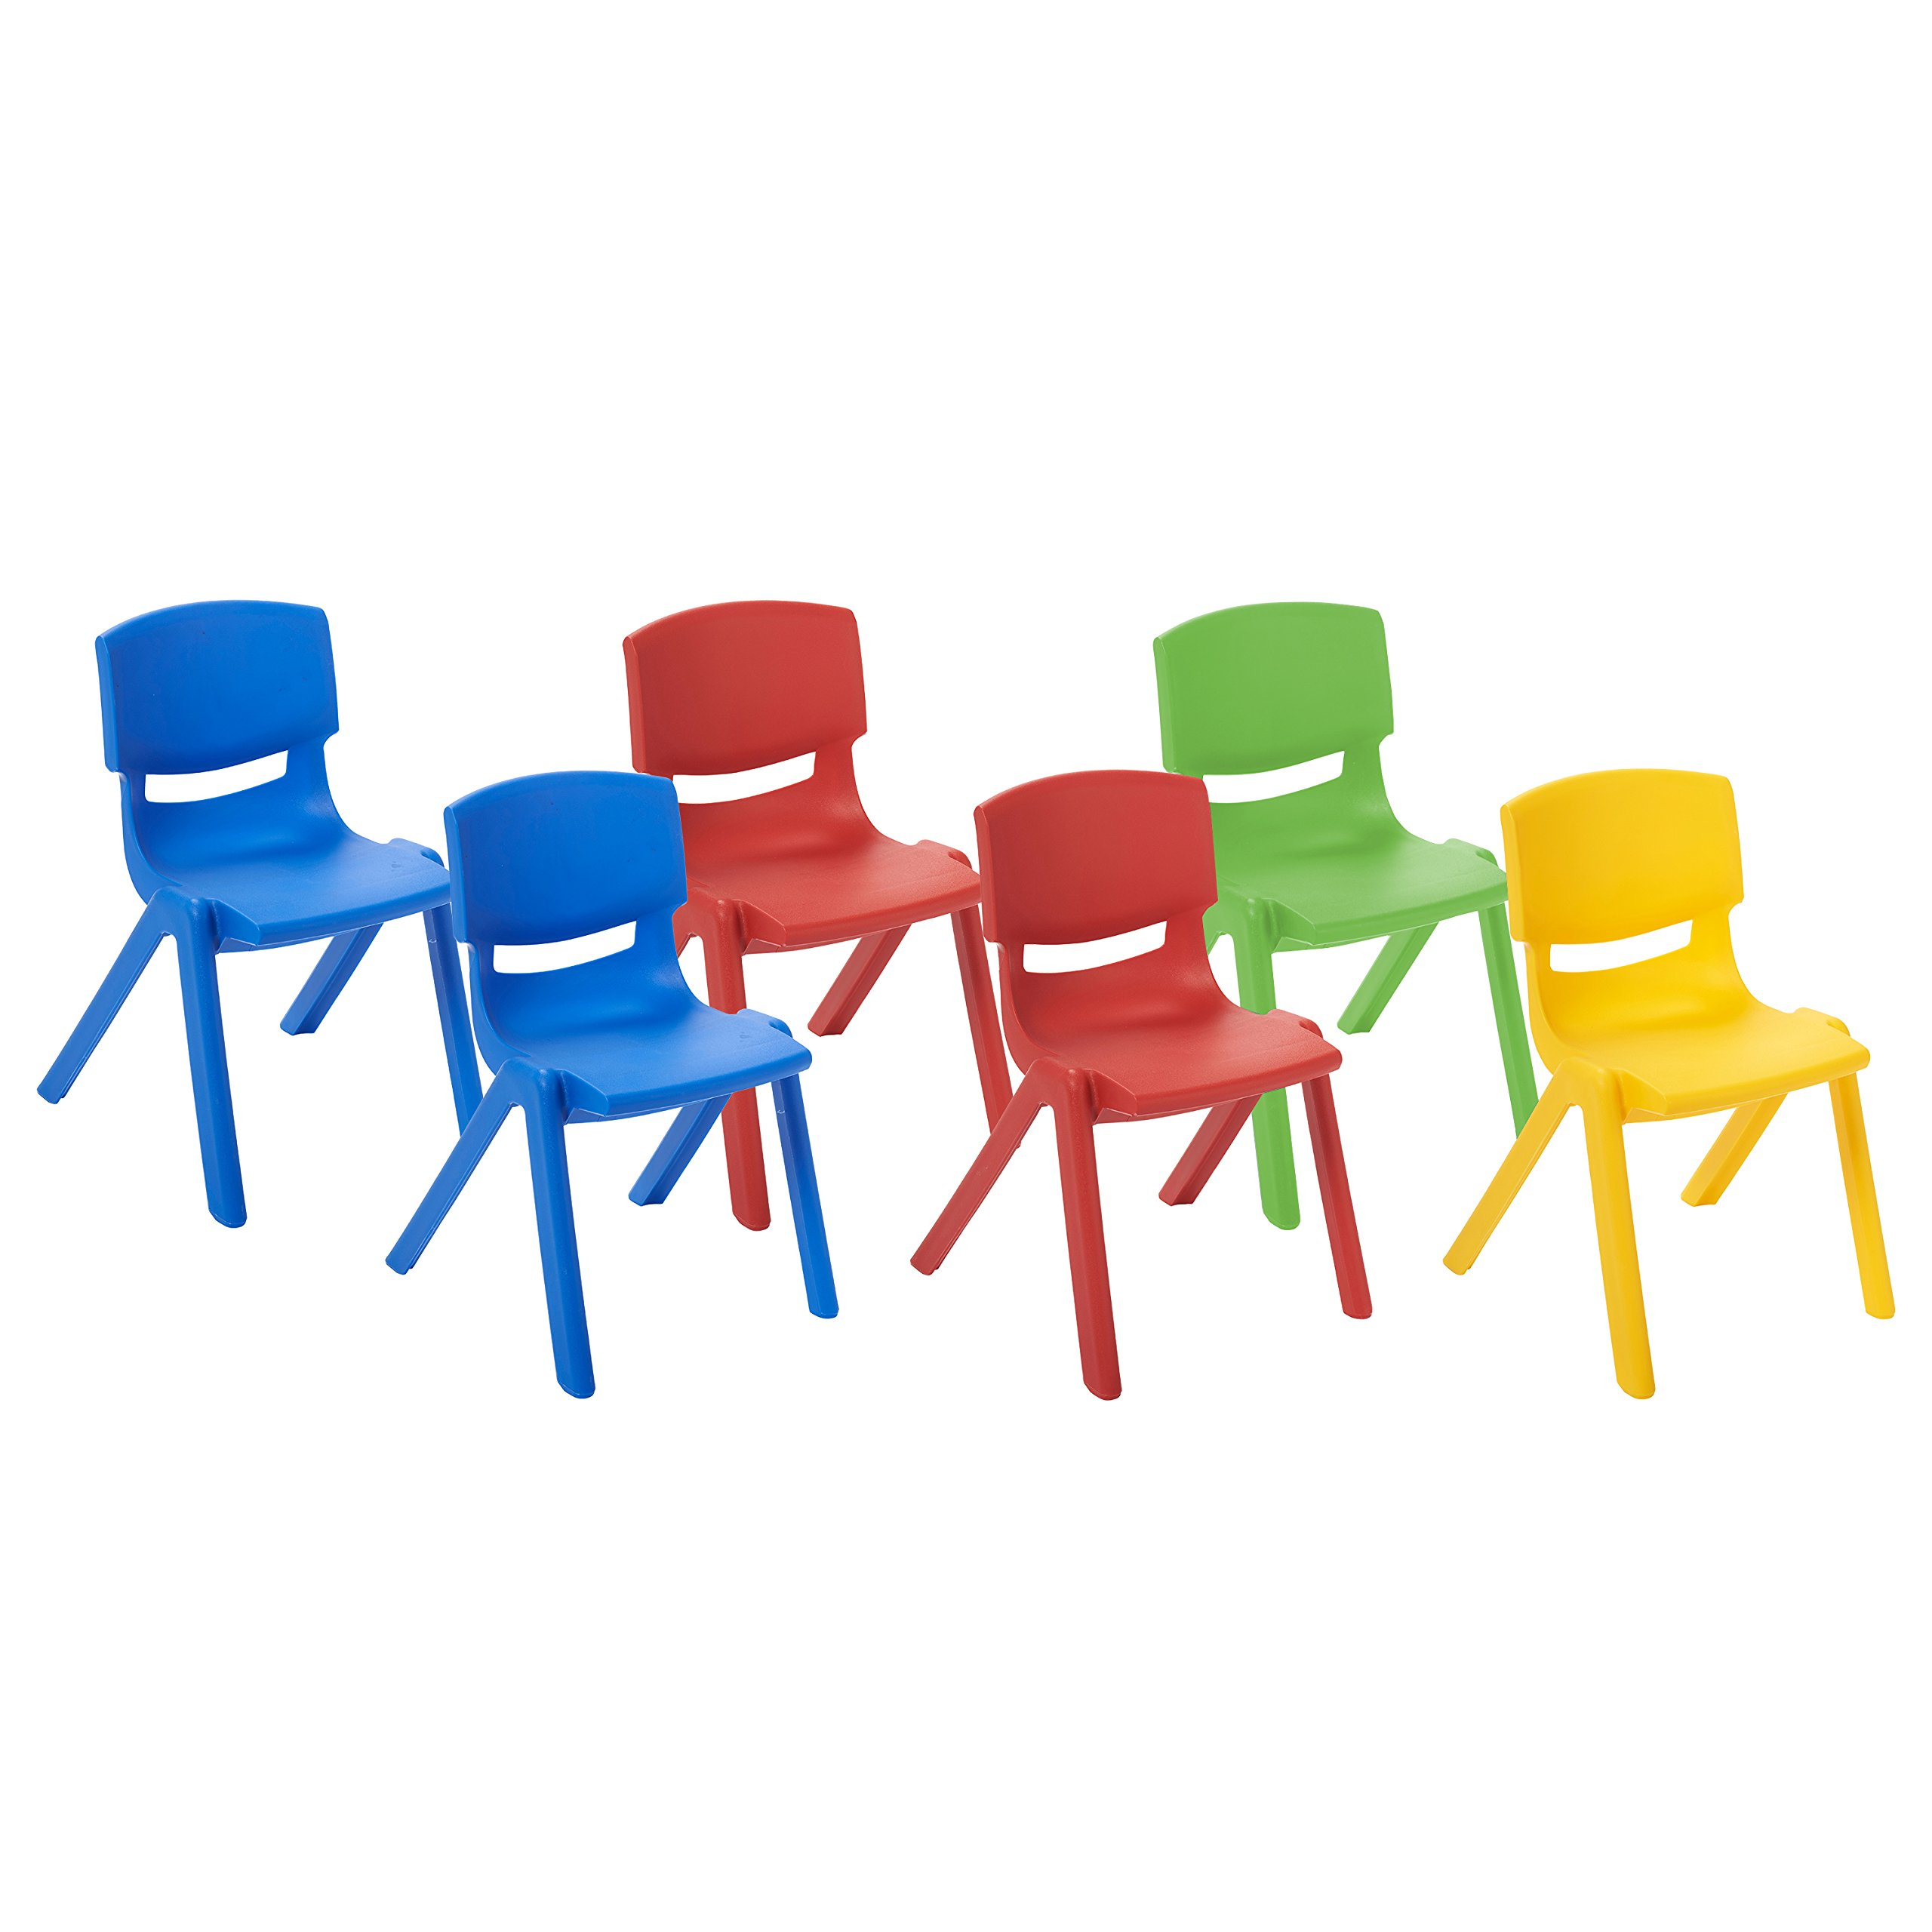 ECR4Kids School Stack Resin Chair, Indoor/Outdoor Plastic Stacking Chairs for Kids, 12 inch Seat Height, Assorted Colors (6-Pack)